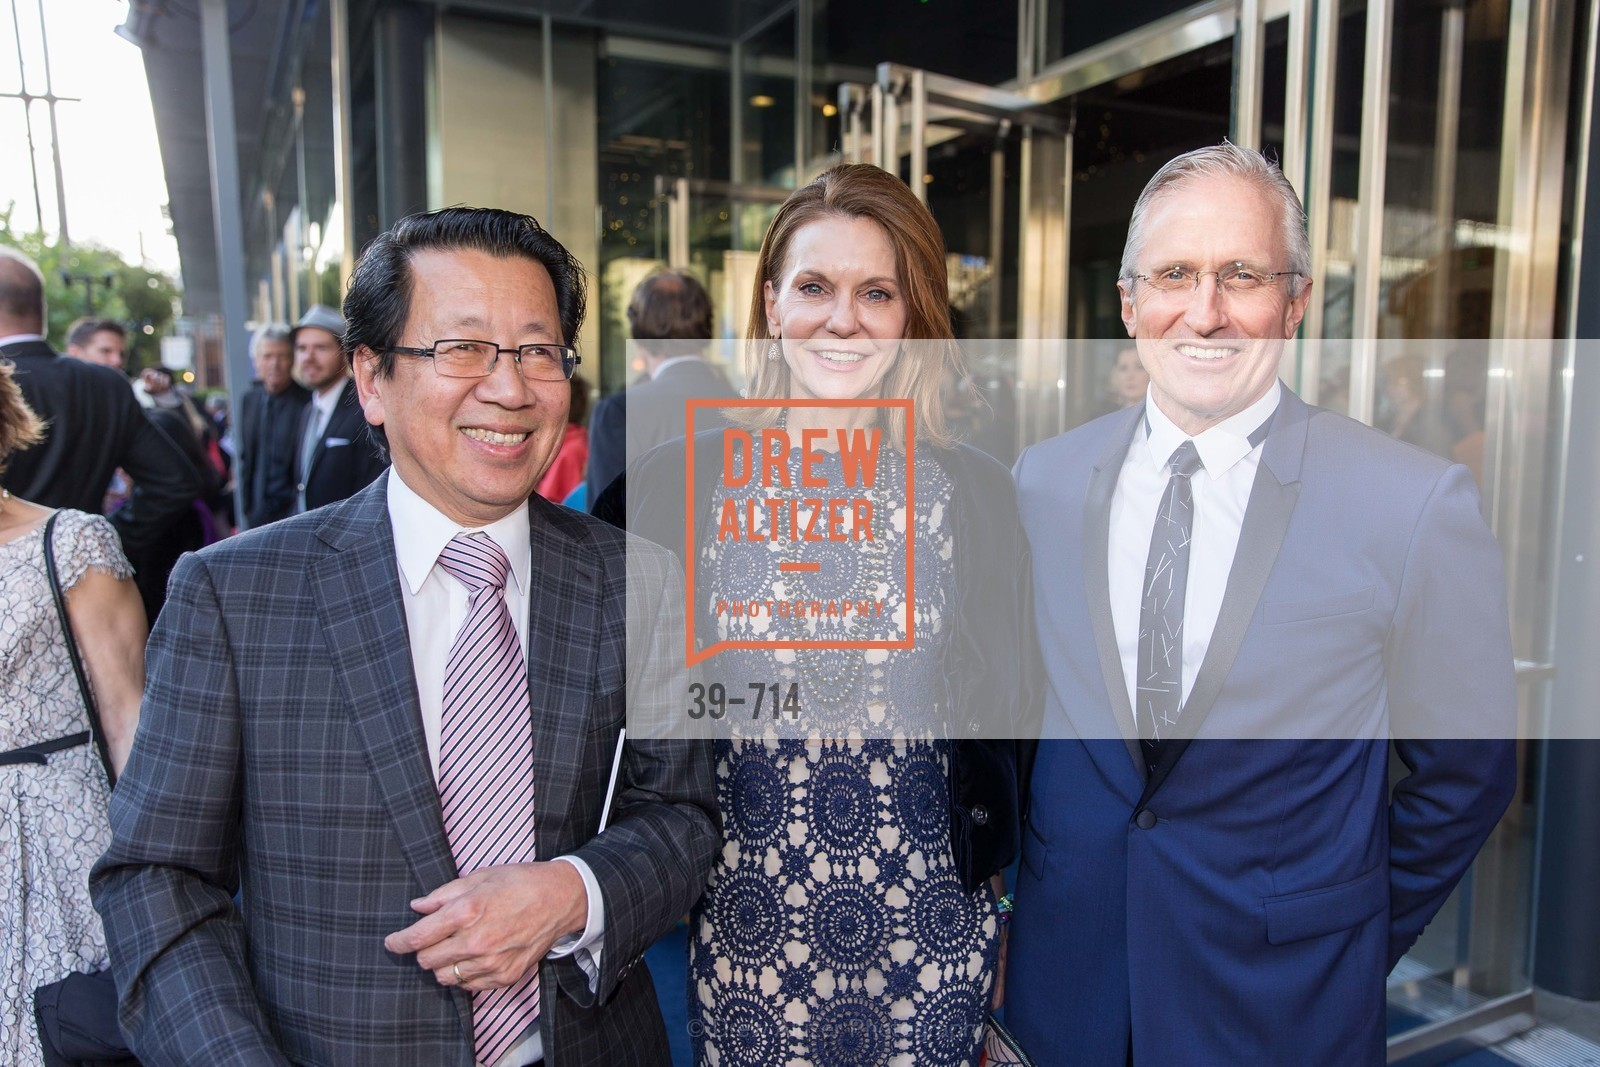 Ben Fong-Torres, Penny Coulter, Jim Coulter, SFJAZZ Gala 2015 Honors Joni Mitchell with Lifetime Achievement Award, US, May 8th, 2015,Drew Altizer, Drew Altizer Photography, full-service agency, private events, San Francisco photographer, photographer california